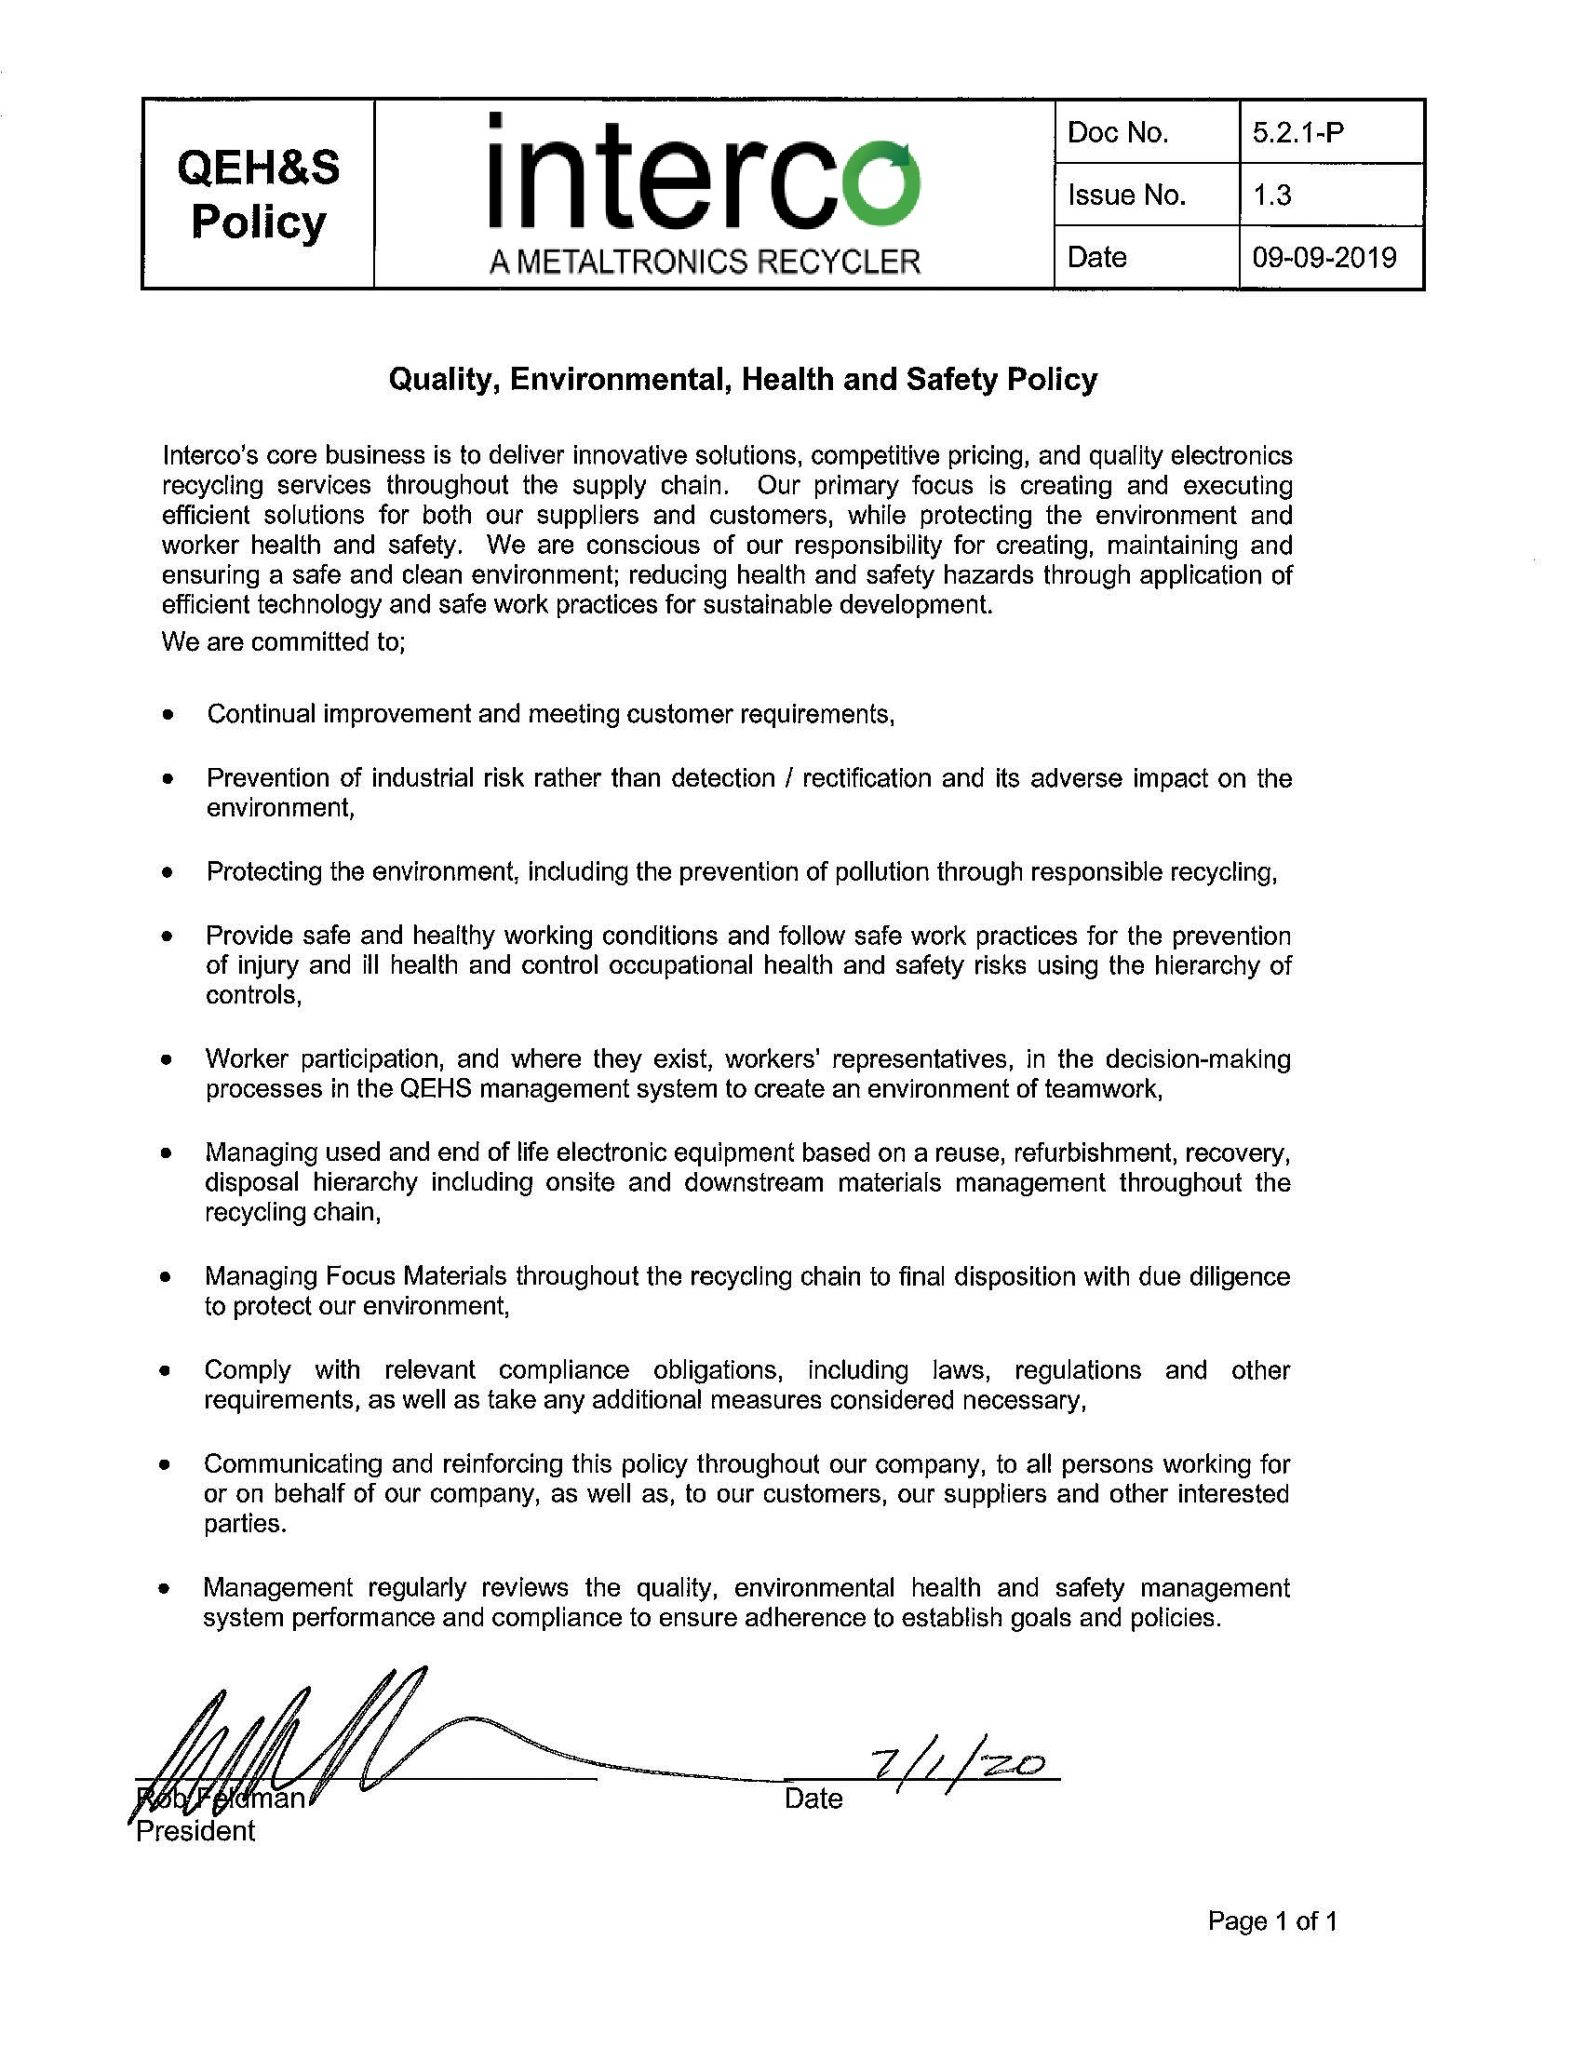 5.2.1-P QEHS Policy 1.3 - signed